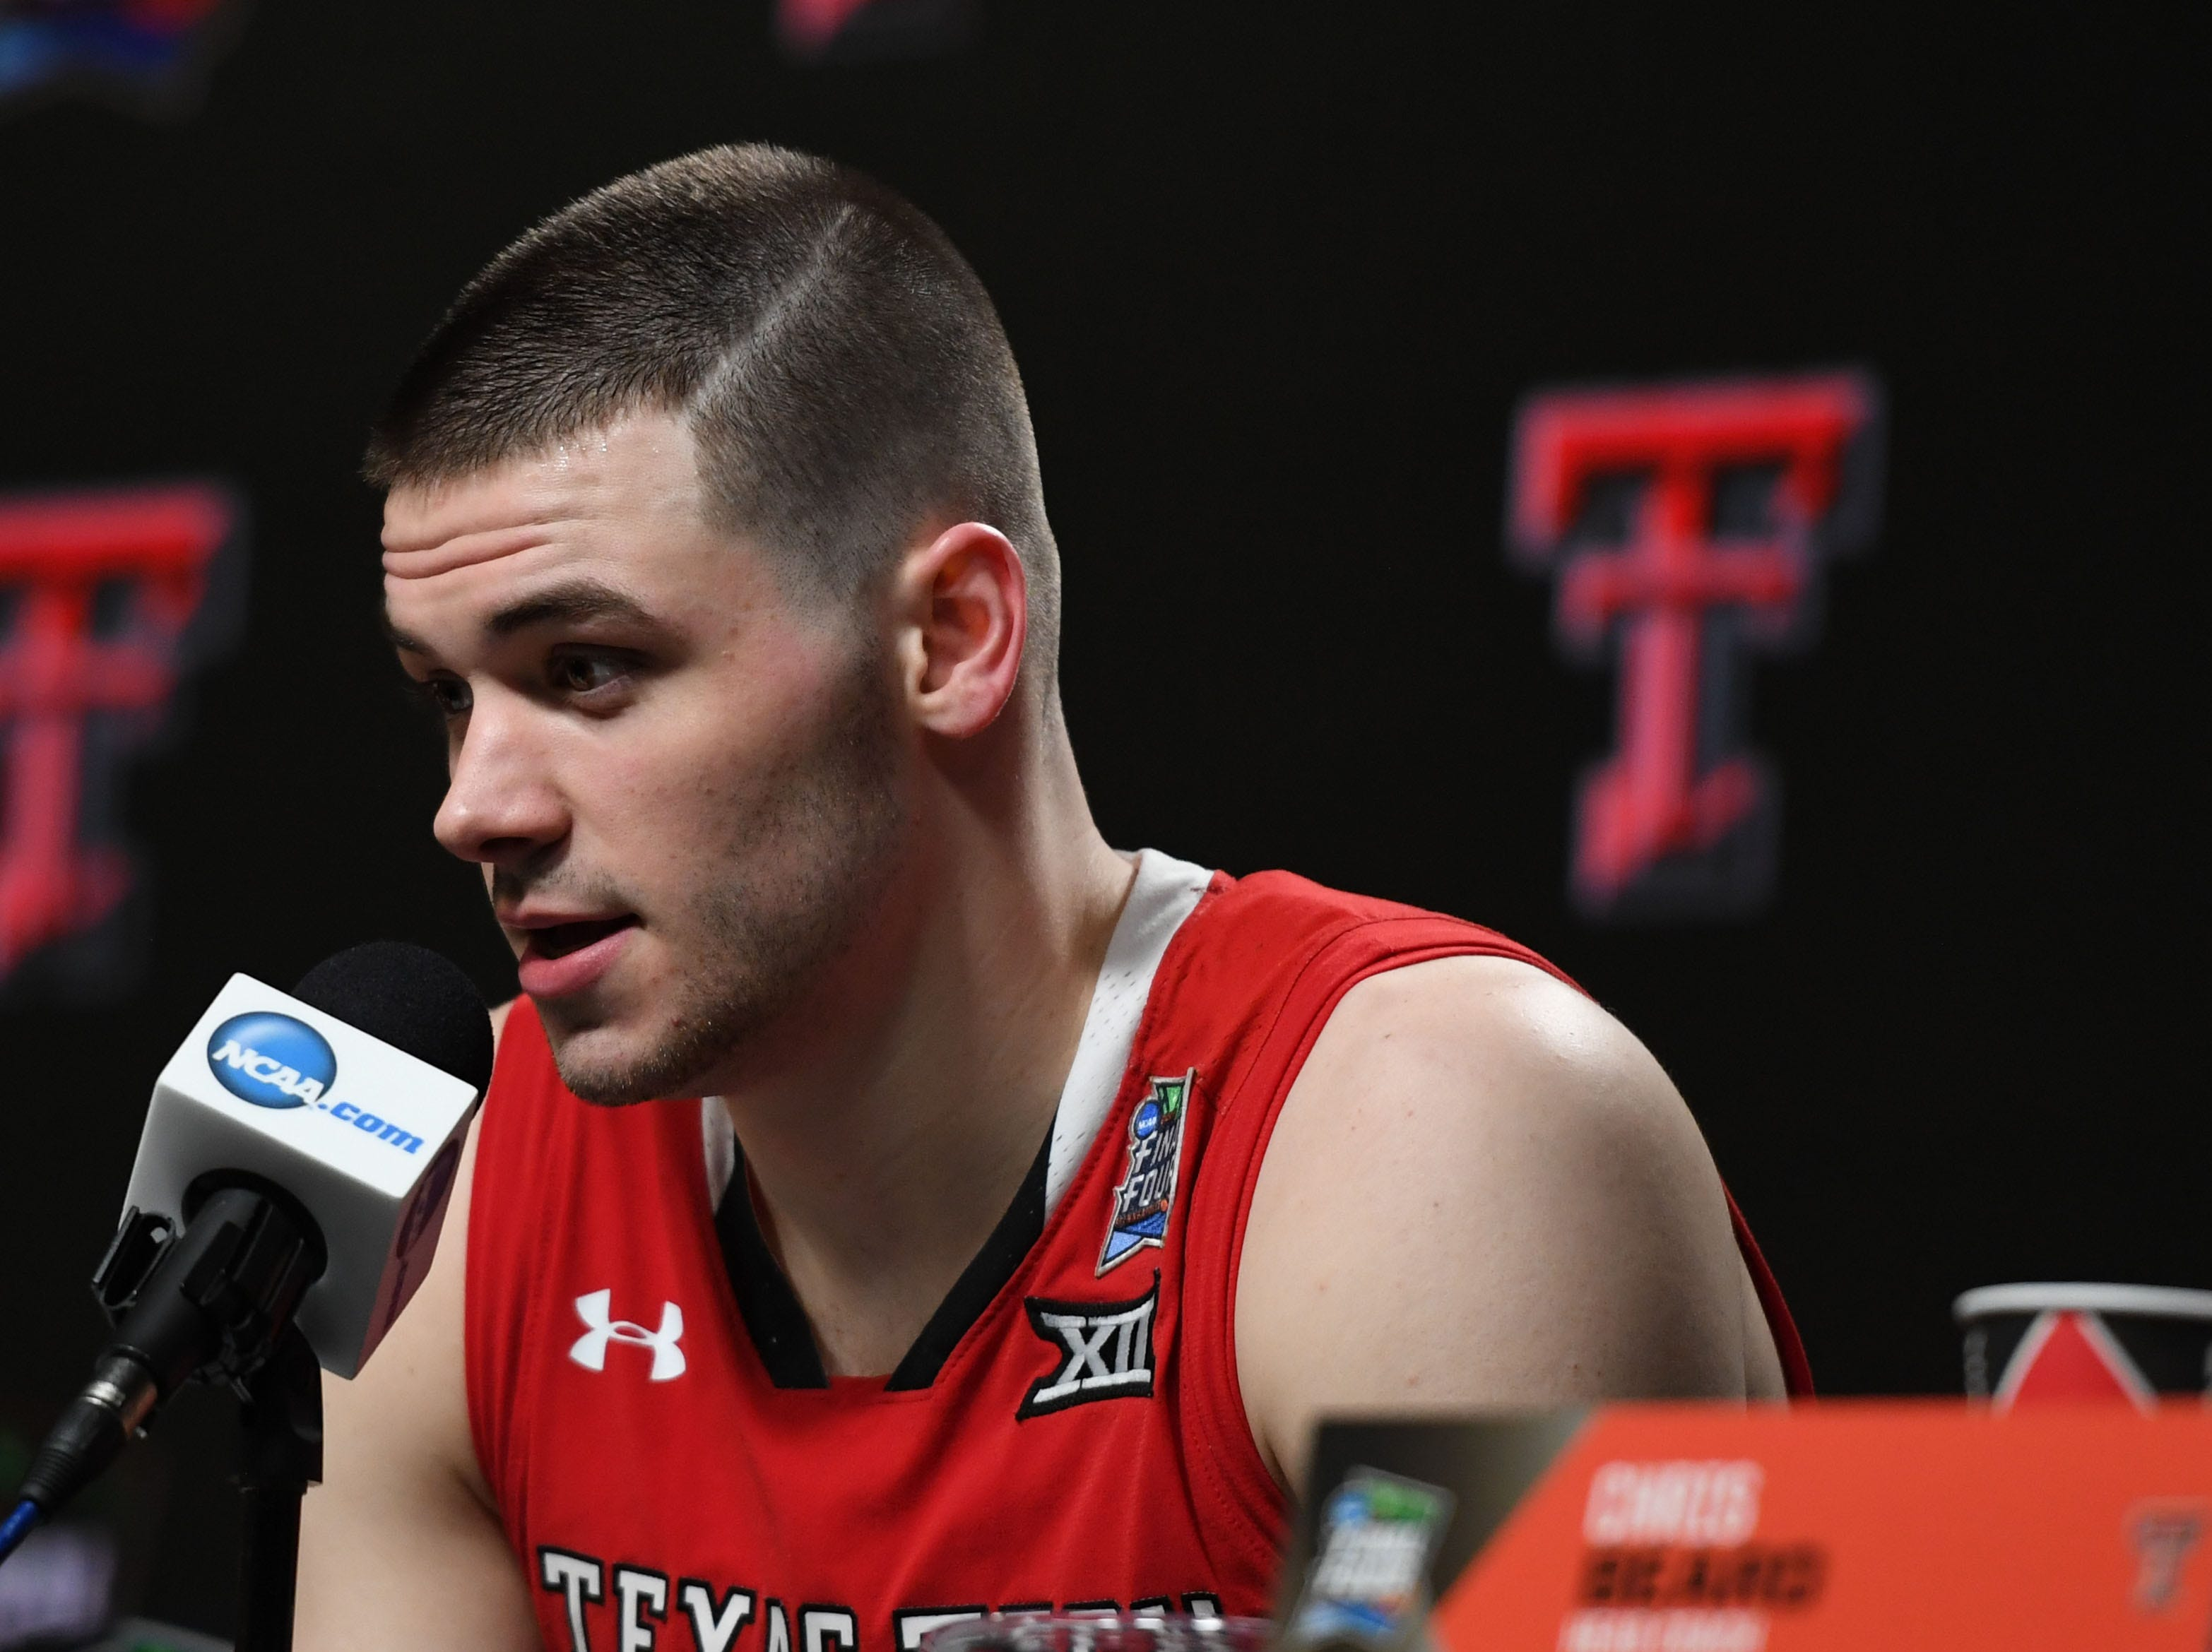 Apr 6, 2019; Minneapolis, MN, USA; Texas Tech Red Raiders guard Matt Mooney at a press conference after the semifinals of the 2019 men's Final Four against the Michigan State Spartans at US Bank Stadium. Mandatory Credit: Shanna Lockwood-USA TODAY Sports